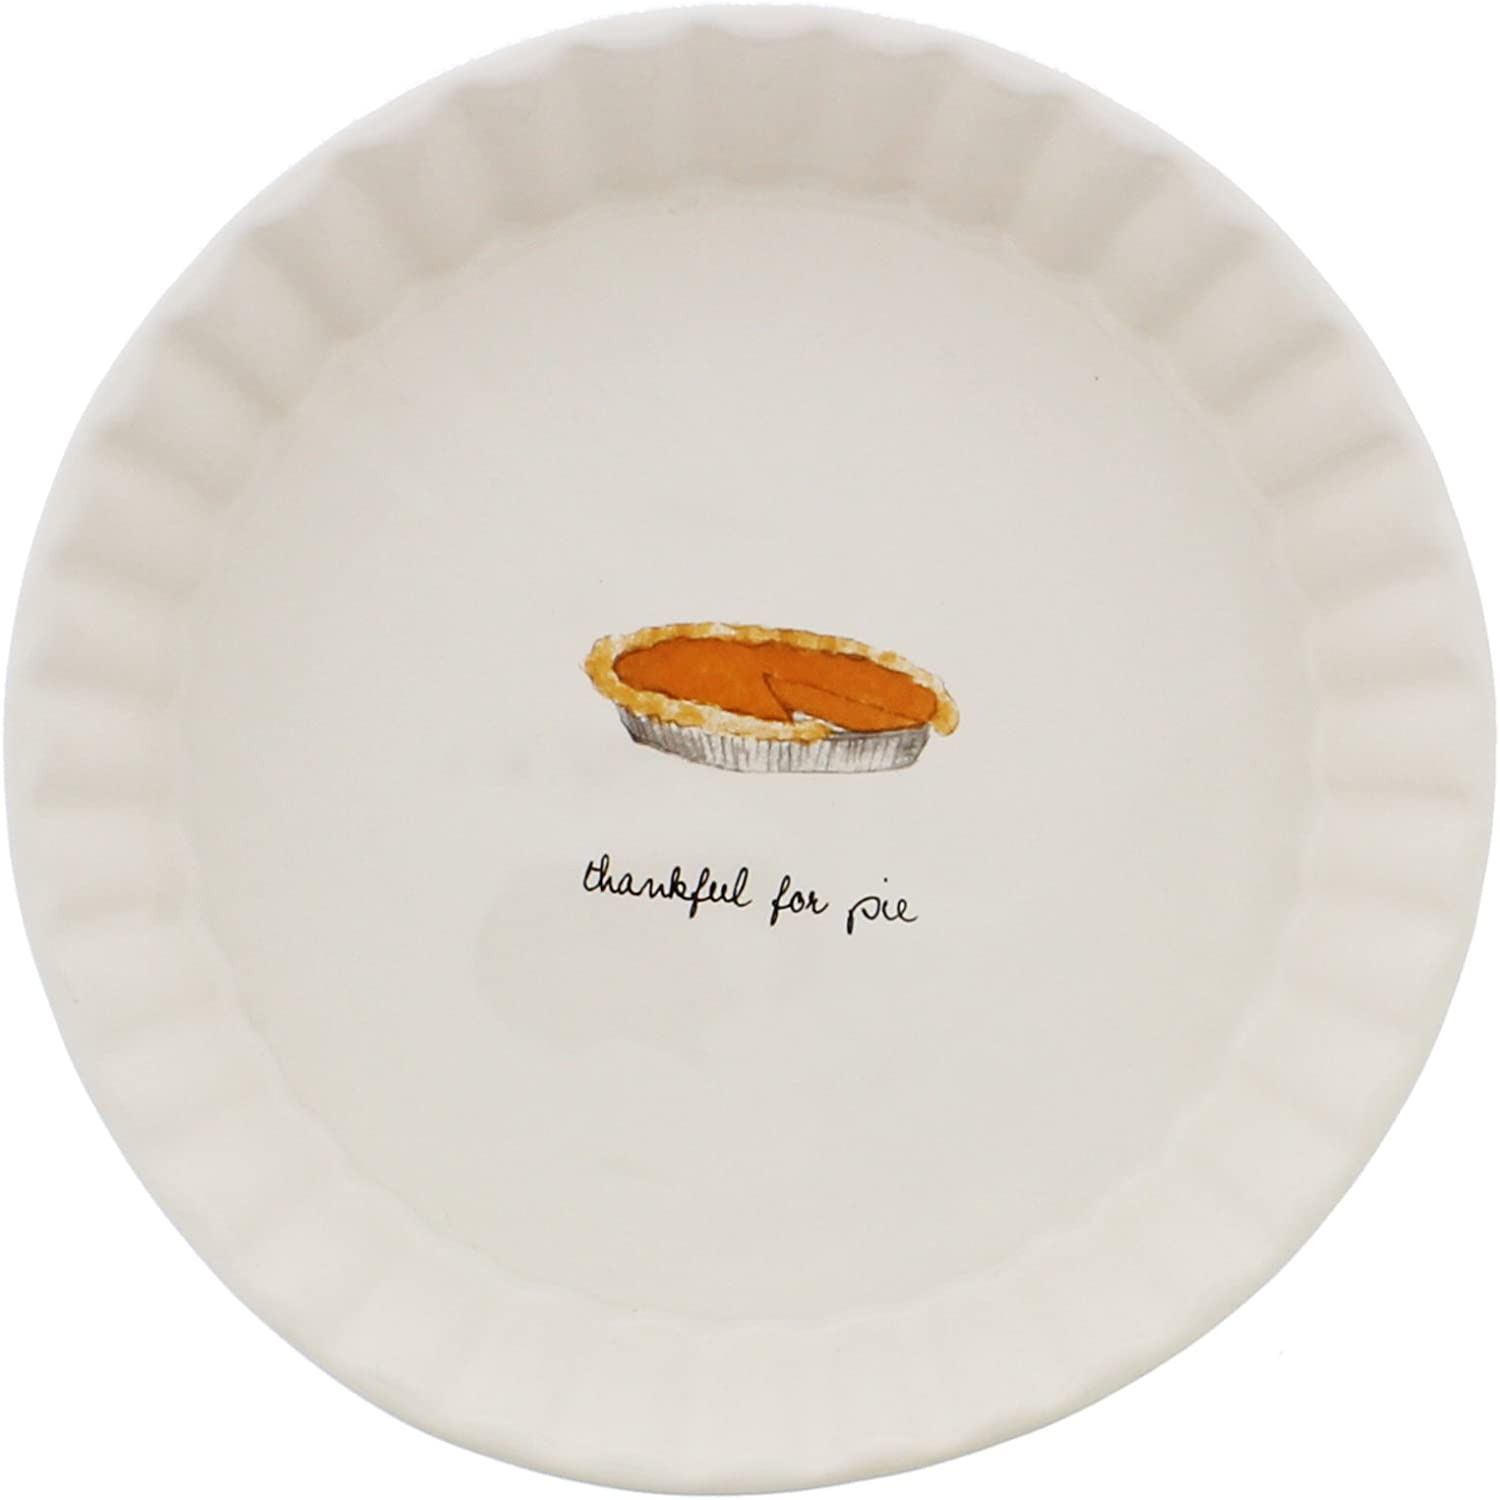 Rae Dunn By Magenta Thankful For Pie Scalloped Pie Plate Dish Kitchen Dining